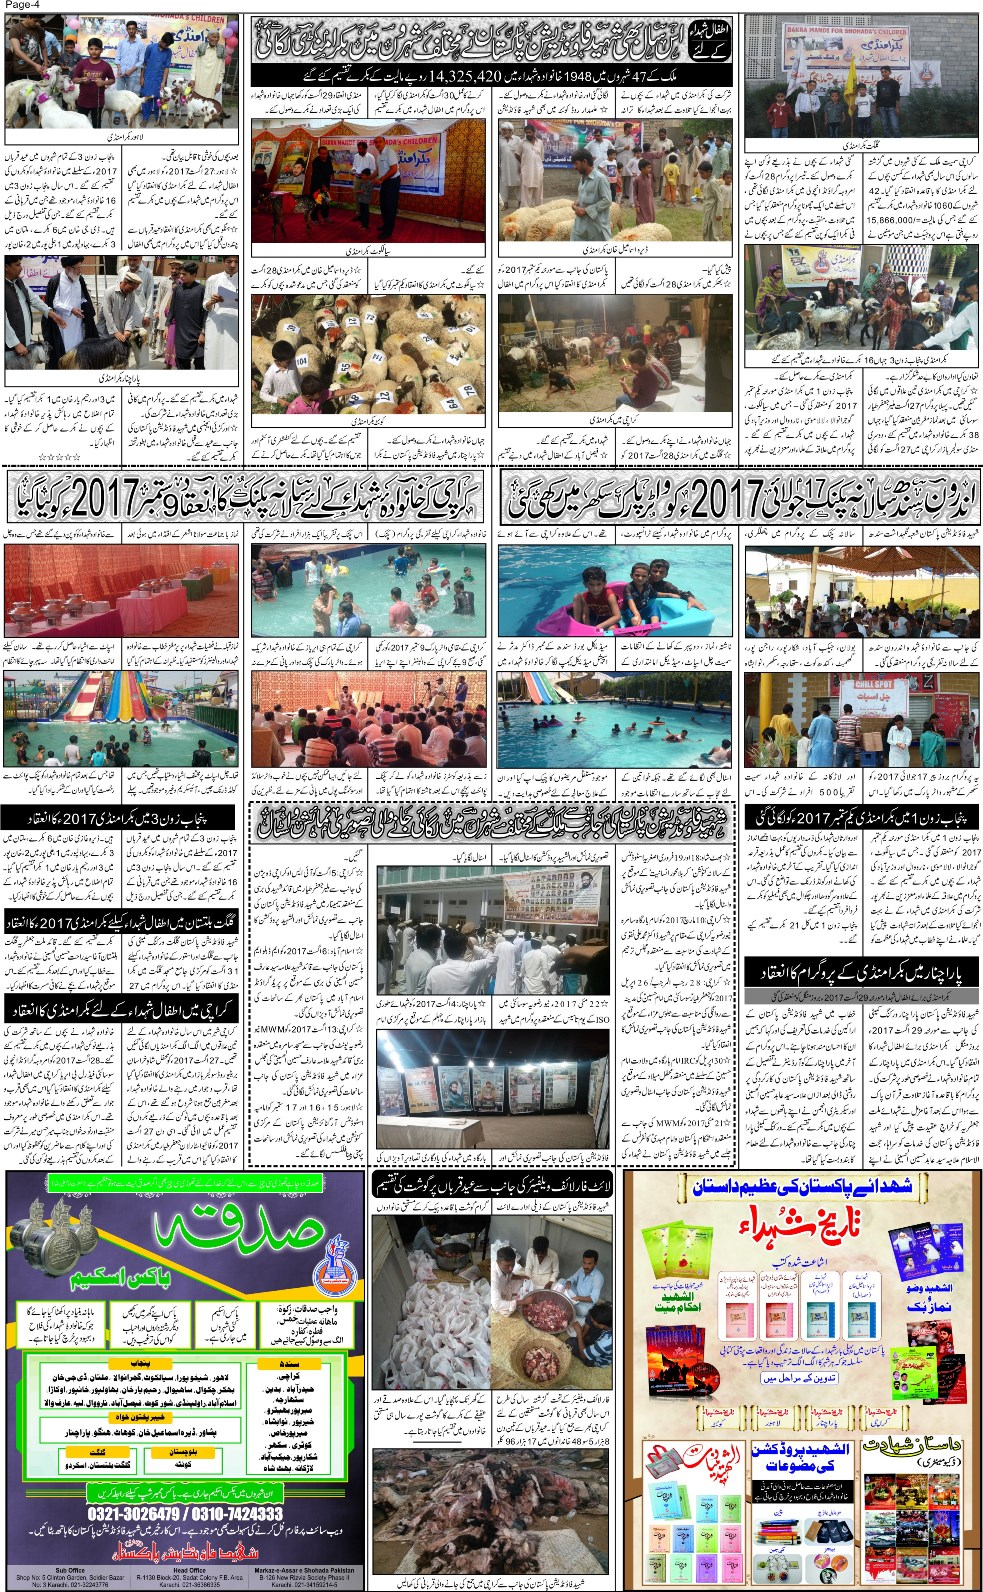 Al Shaheed News paper October 2017